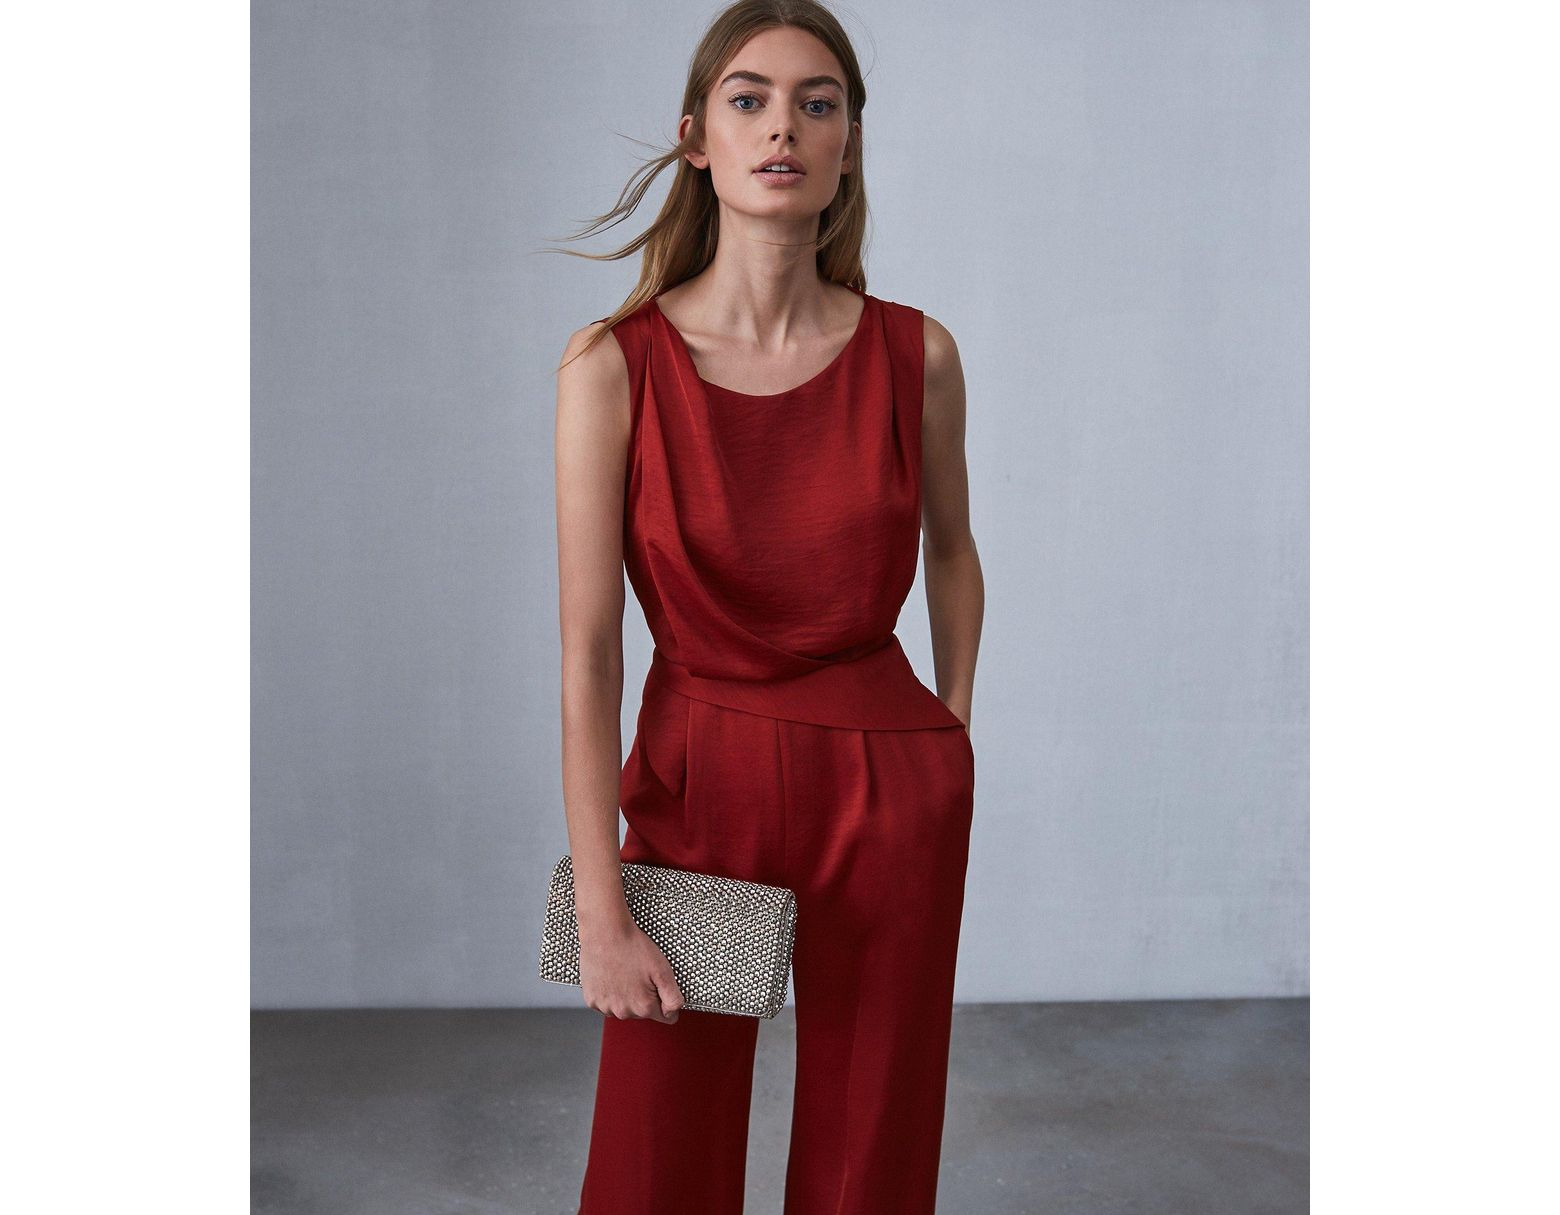 c97329452 Reiss Benita - Low Back Detail Jumpsuit in Red - Save 73% - Lyst